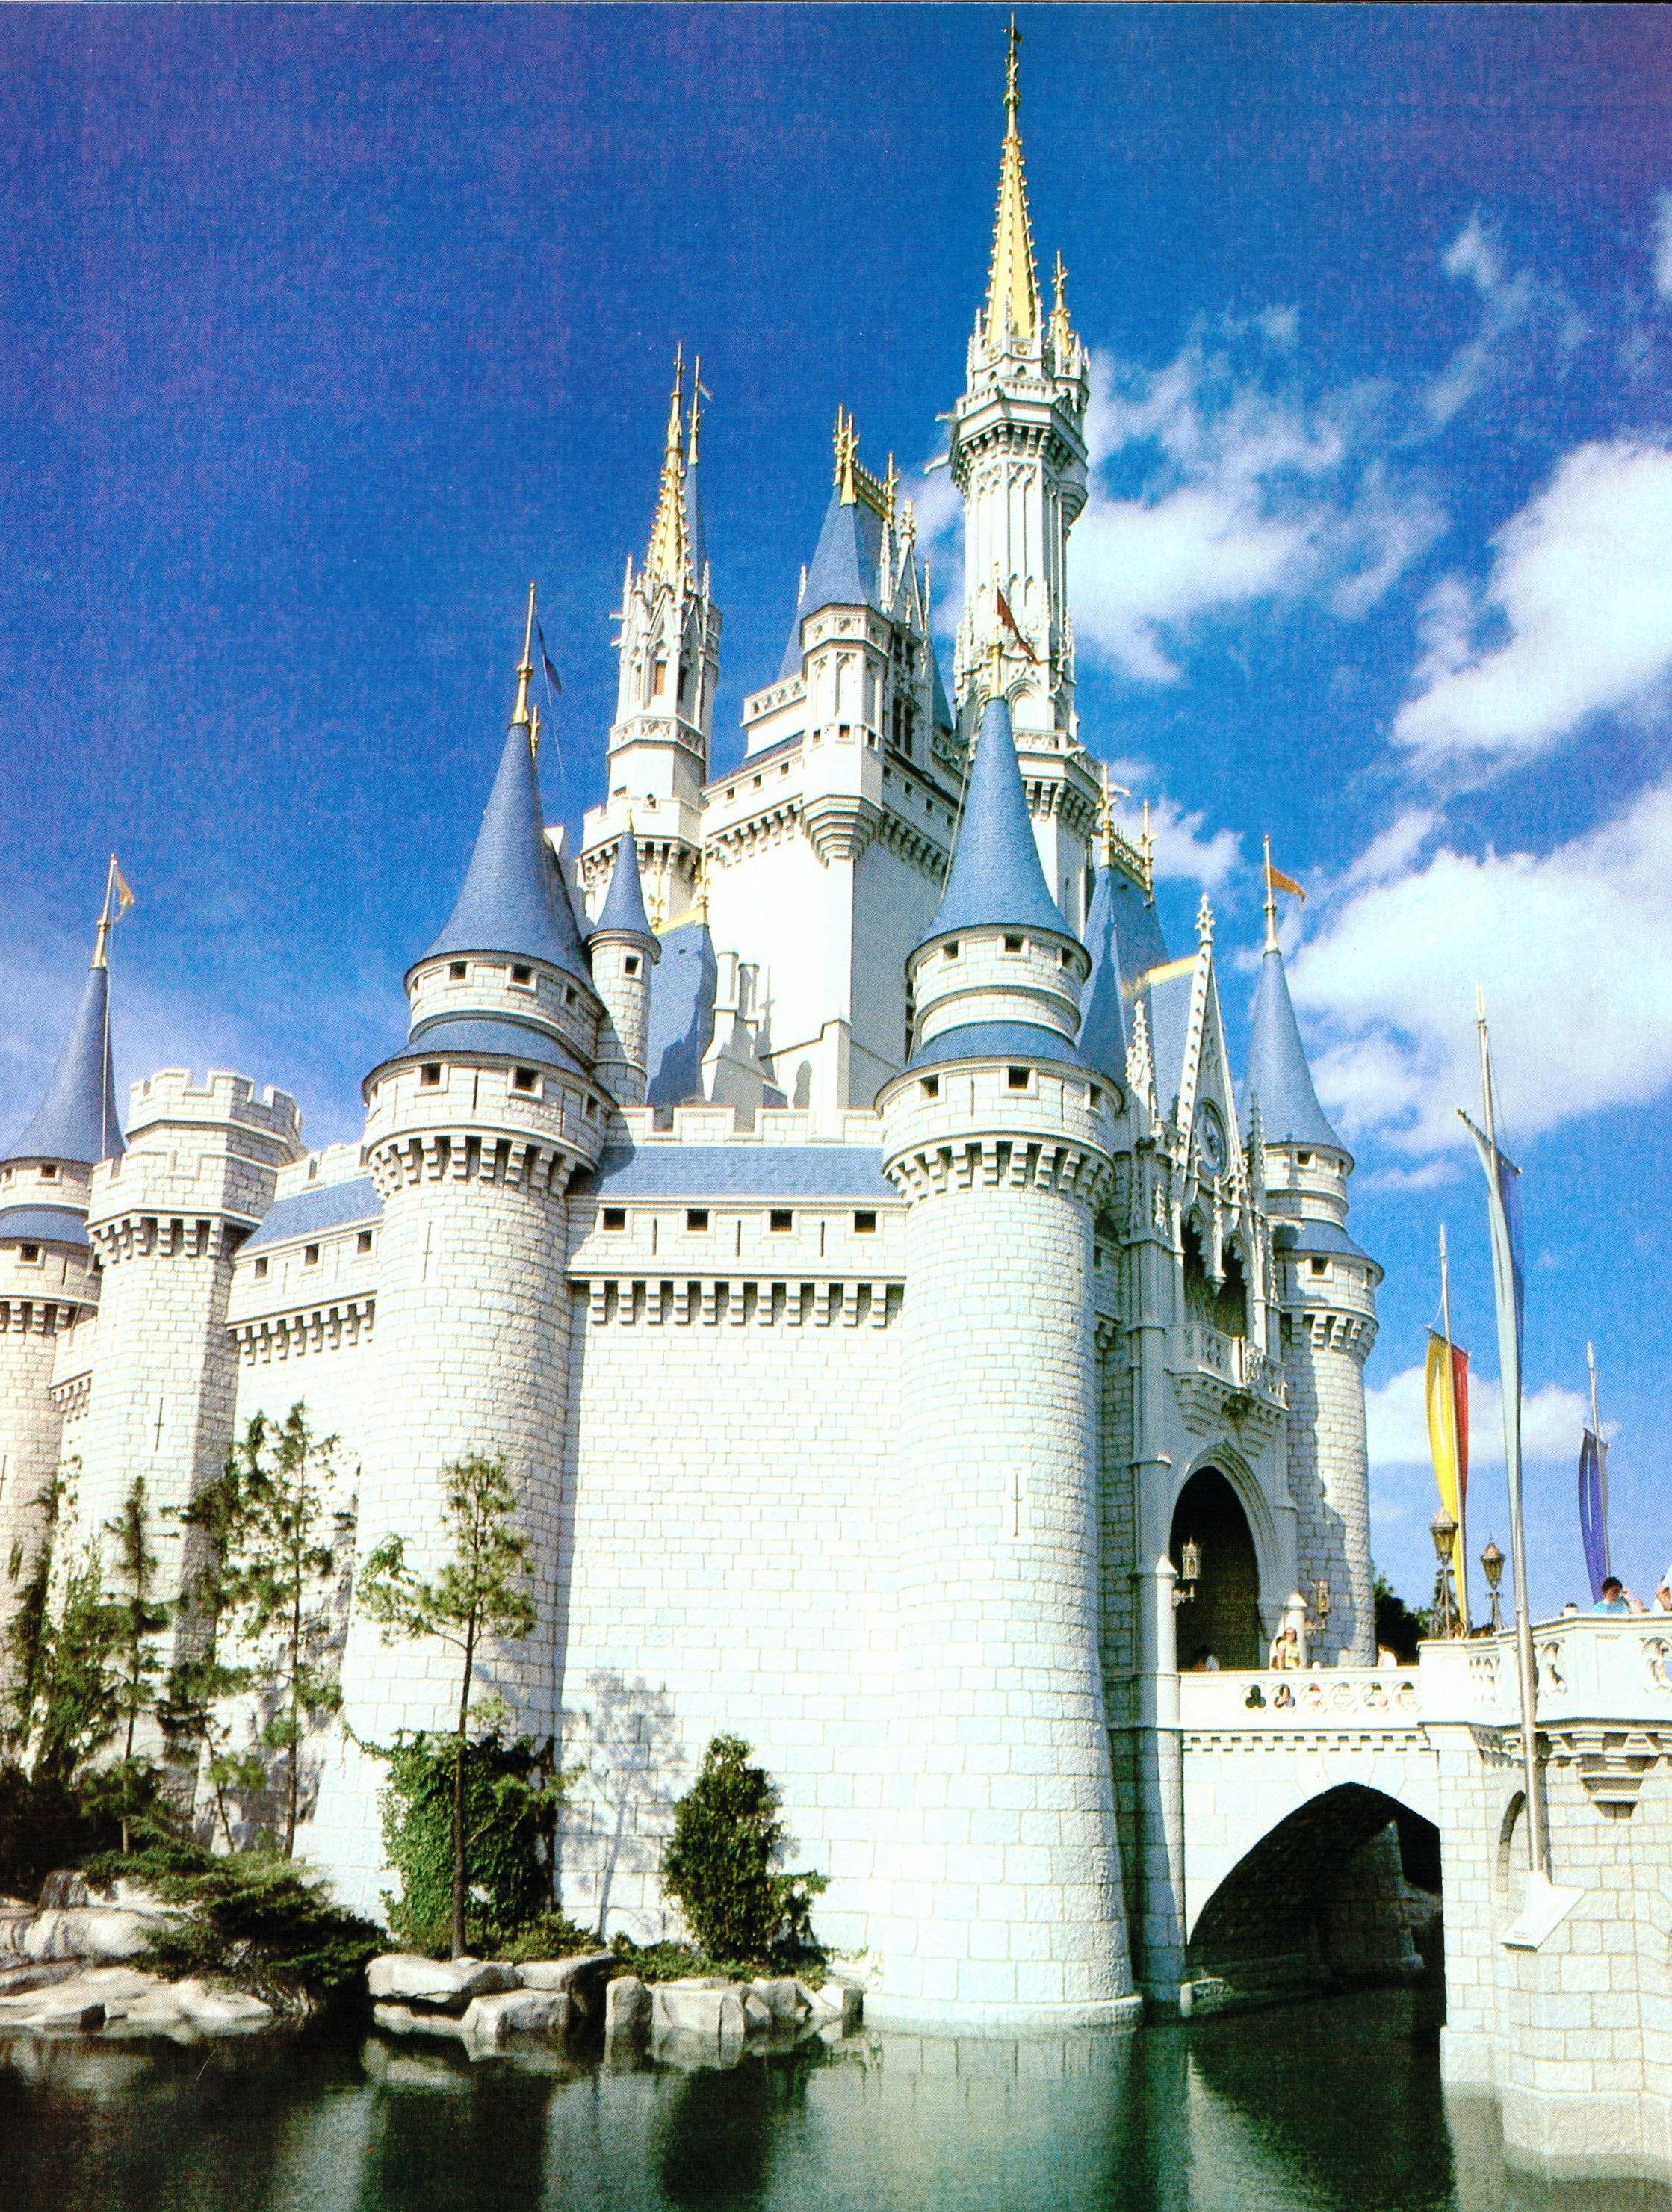 cinderella s castle at disney world At a height of almost 180 feet tall, cinderella's castle at walt disney world in florida is almost twice the height of the sleeping beauty castle at.